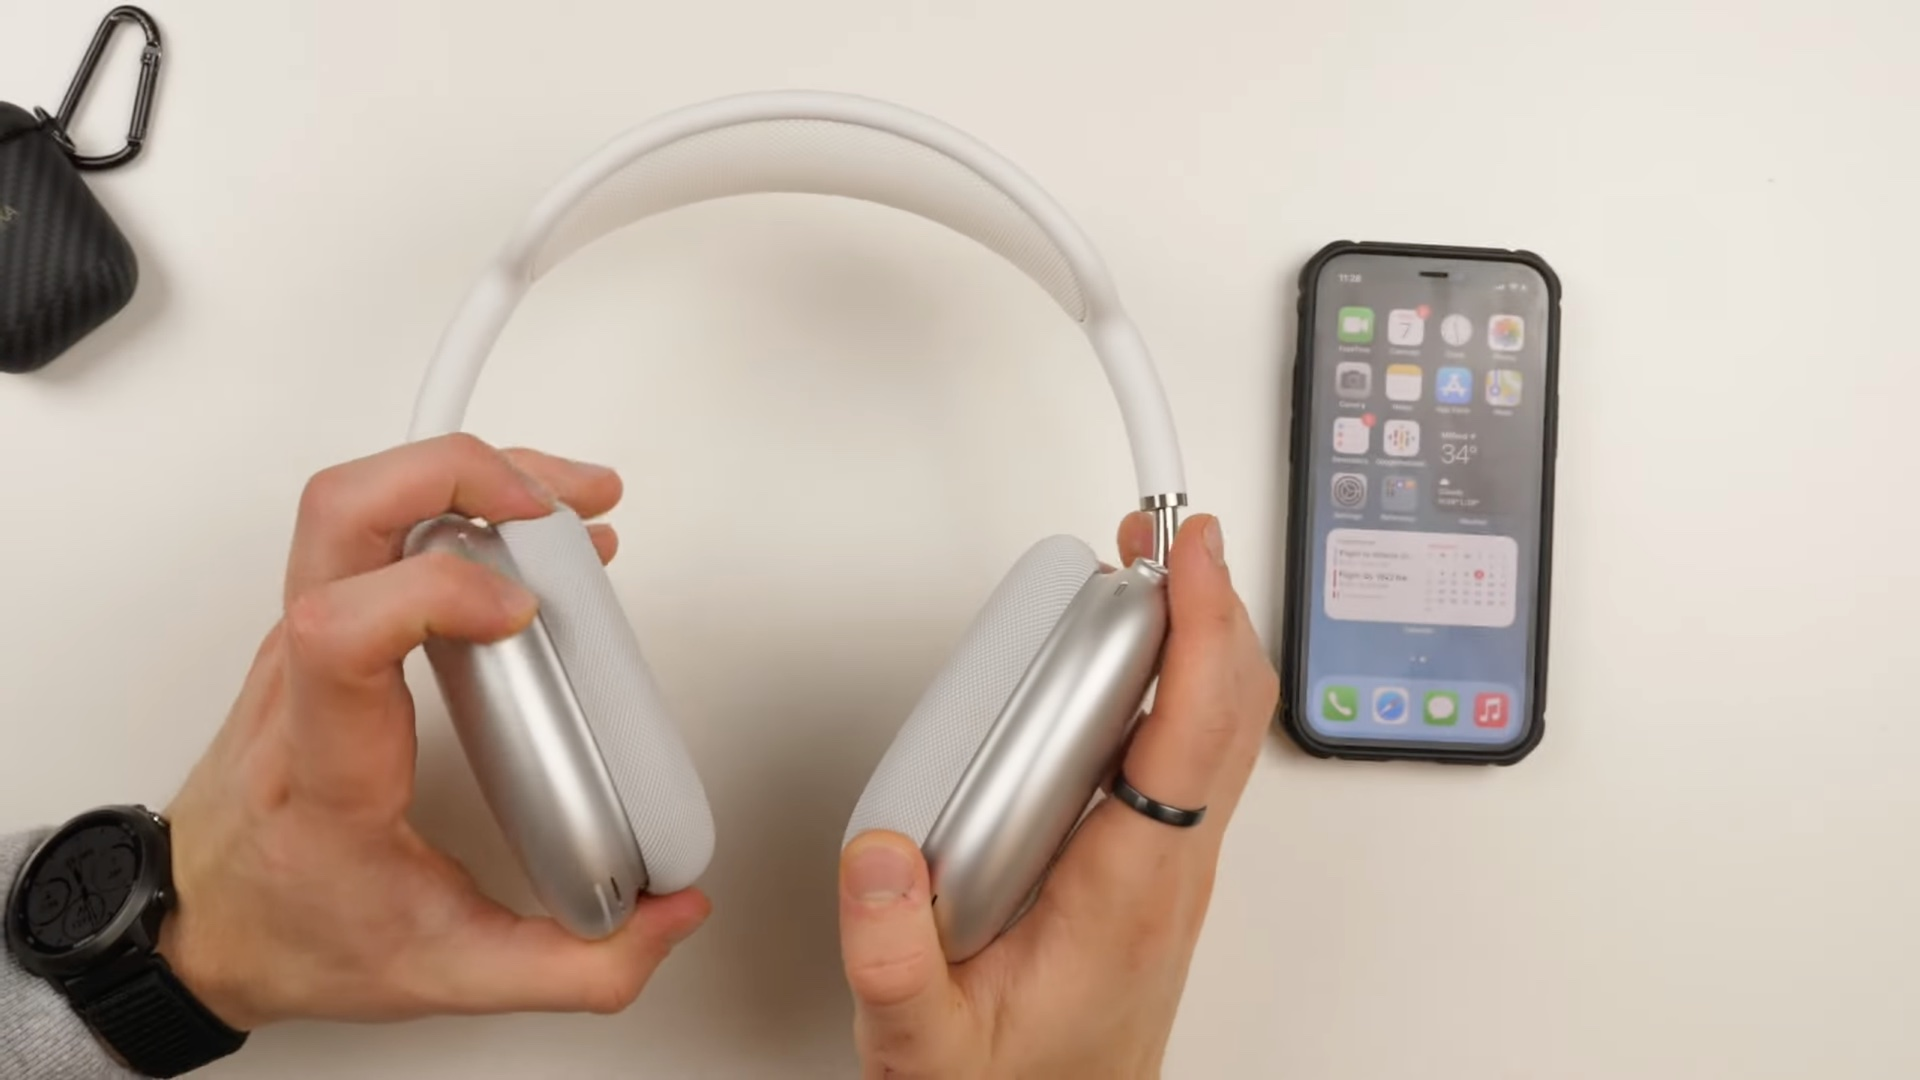 A young male's hands holding a silver pair of AirPods Max above a table